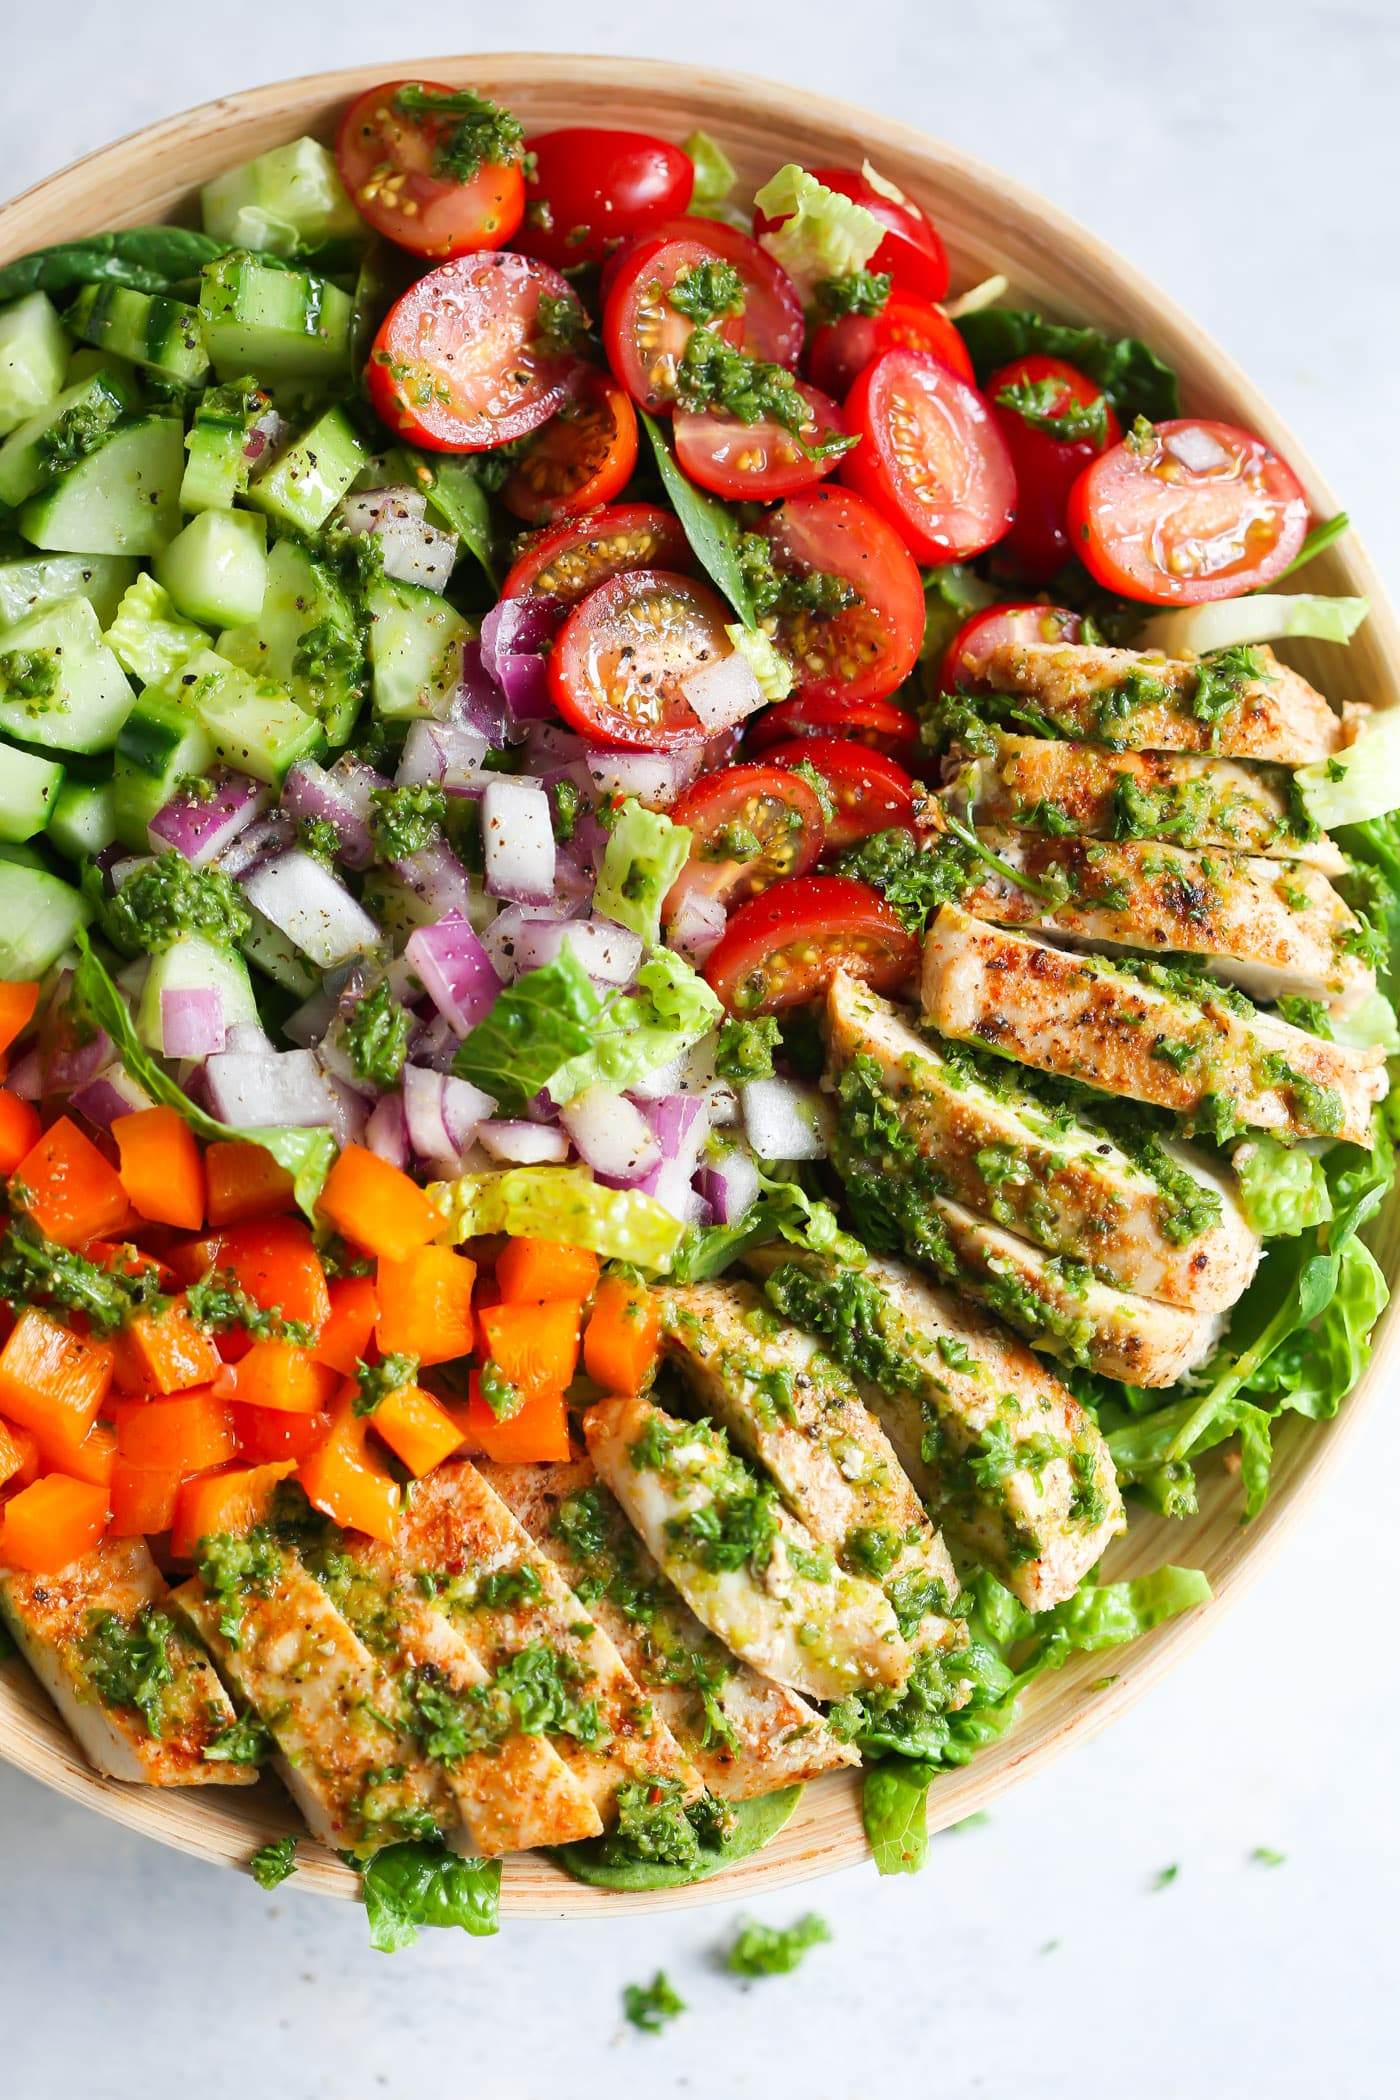 This fresh Chimichurri Chicken Chopped Salad is loaded with lettuces, cherry tomatoes, cucumber, bell pepper, red onions and grilled chicken. It's a complete meal to enjoy this summer!